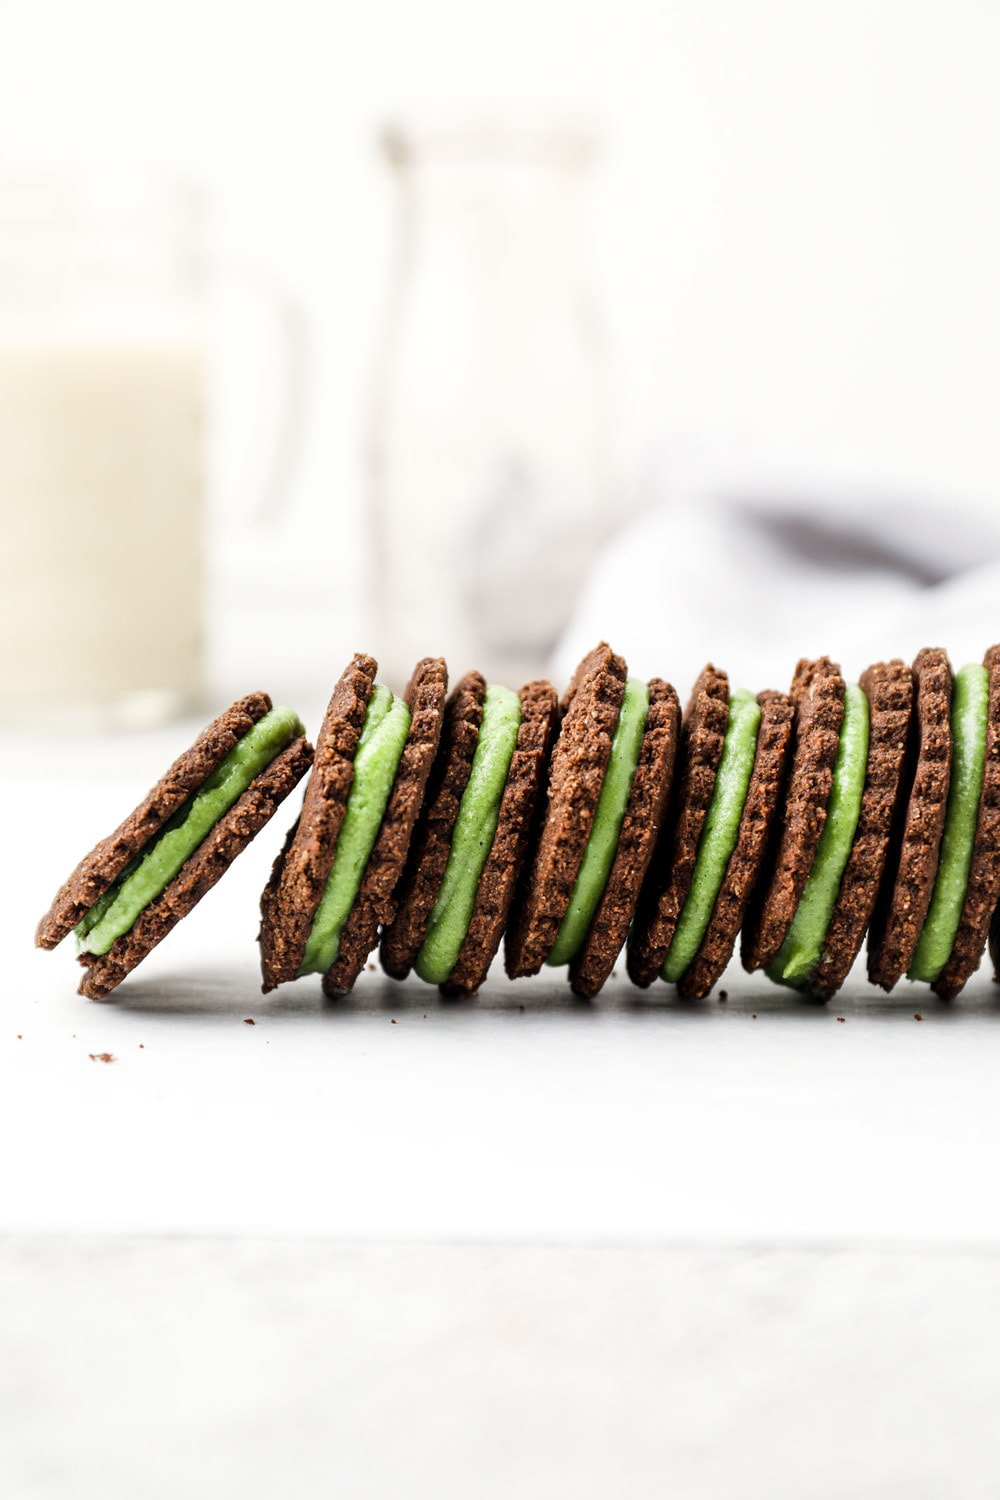 Vegan chocolate sandwich cookies with mint green filling.